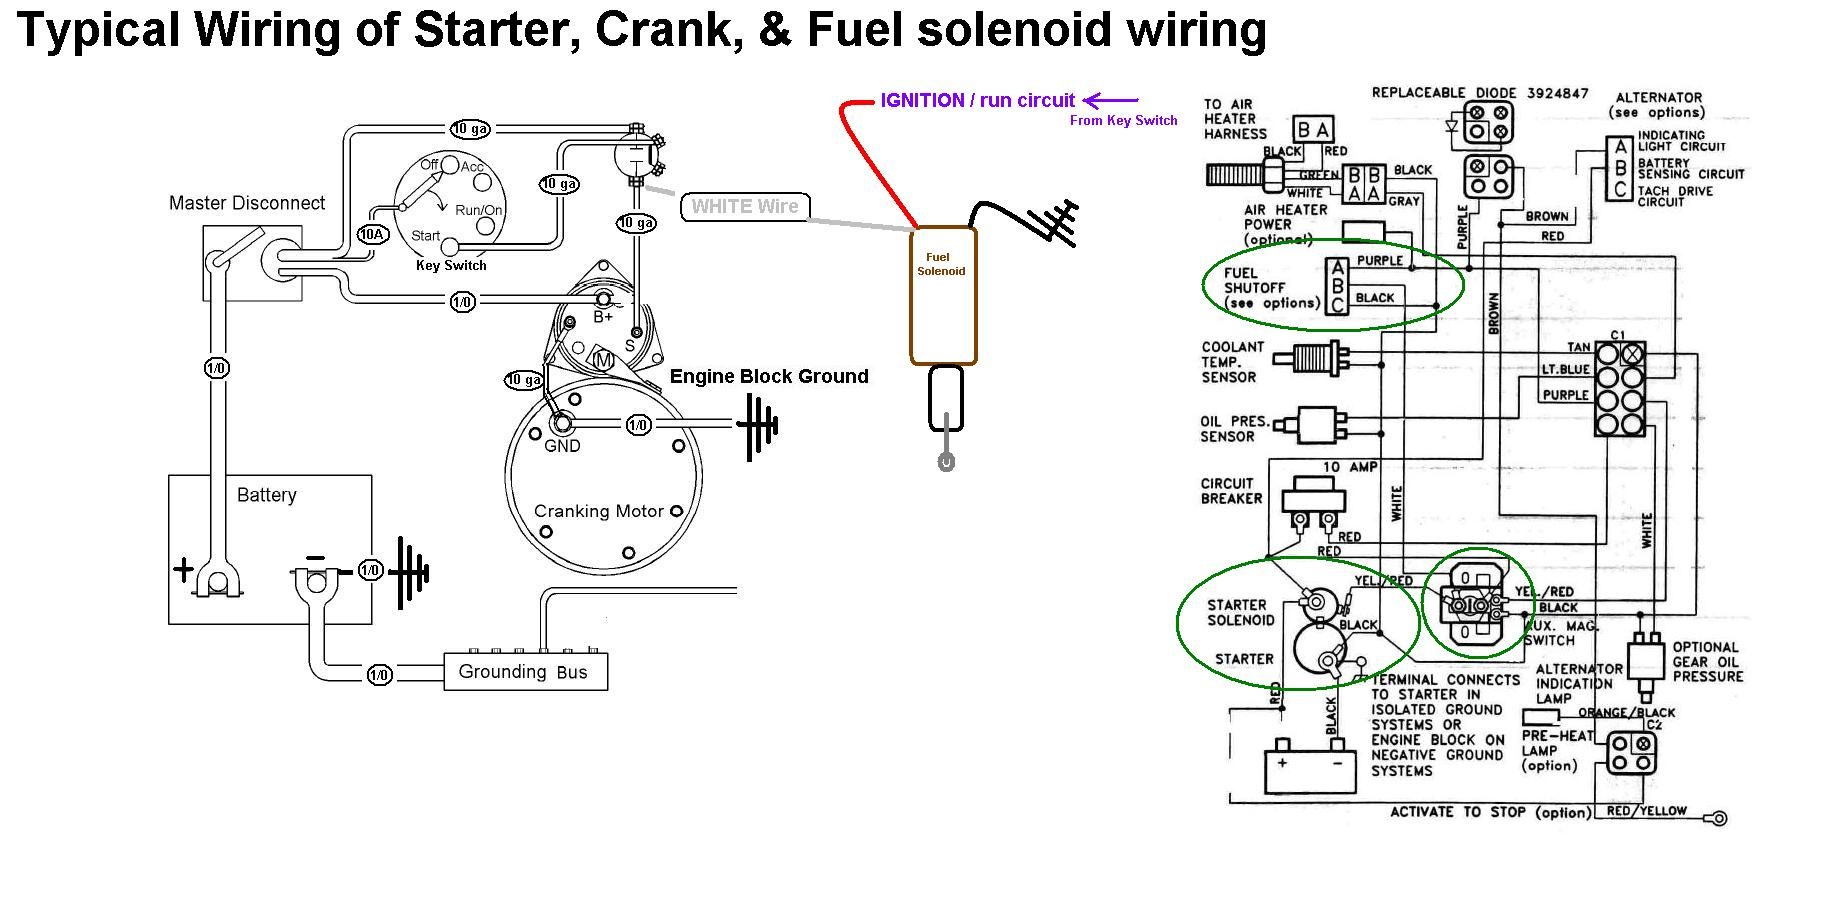 12 valve cummins fuel system diagram strat wiring 5 way switch stratocaster tricks electric guitar pickups starter crank and shutoff solenoid seaboard